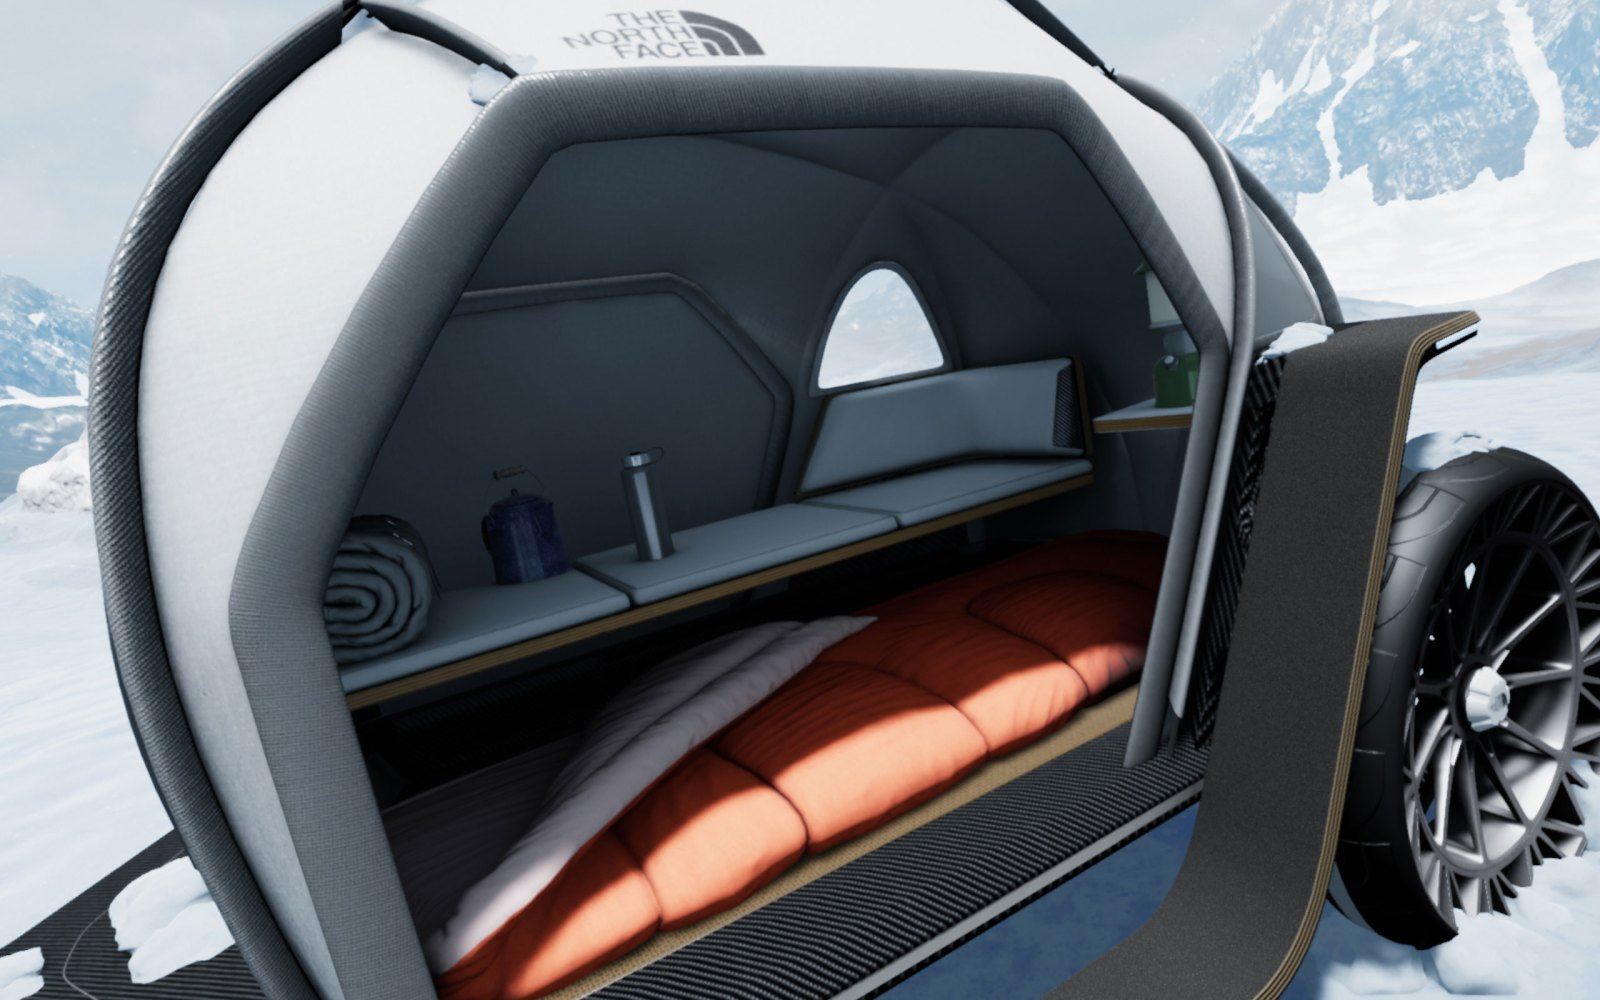 the north face camper interior with a bed and table